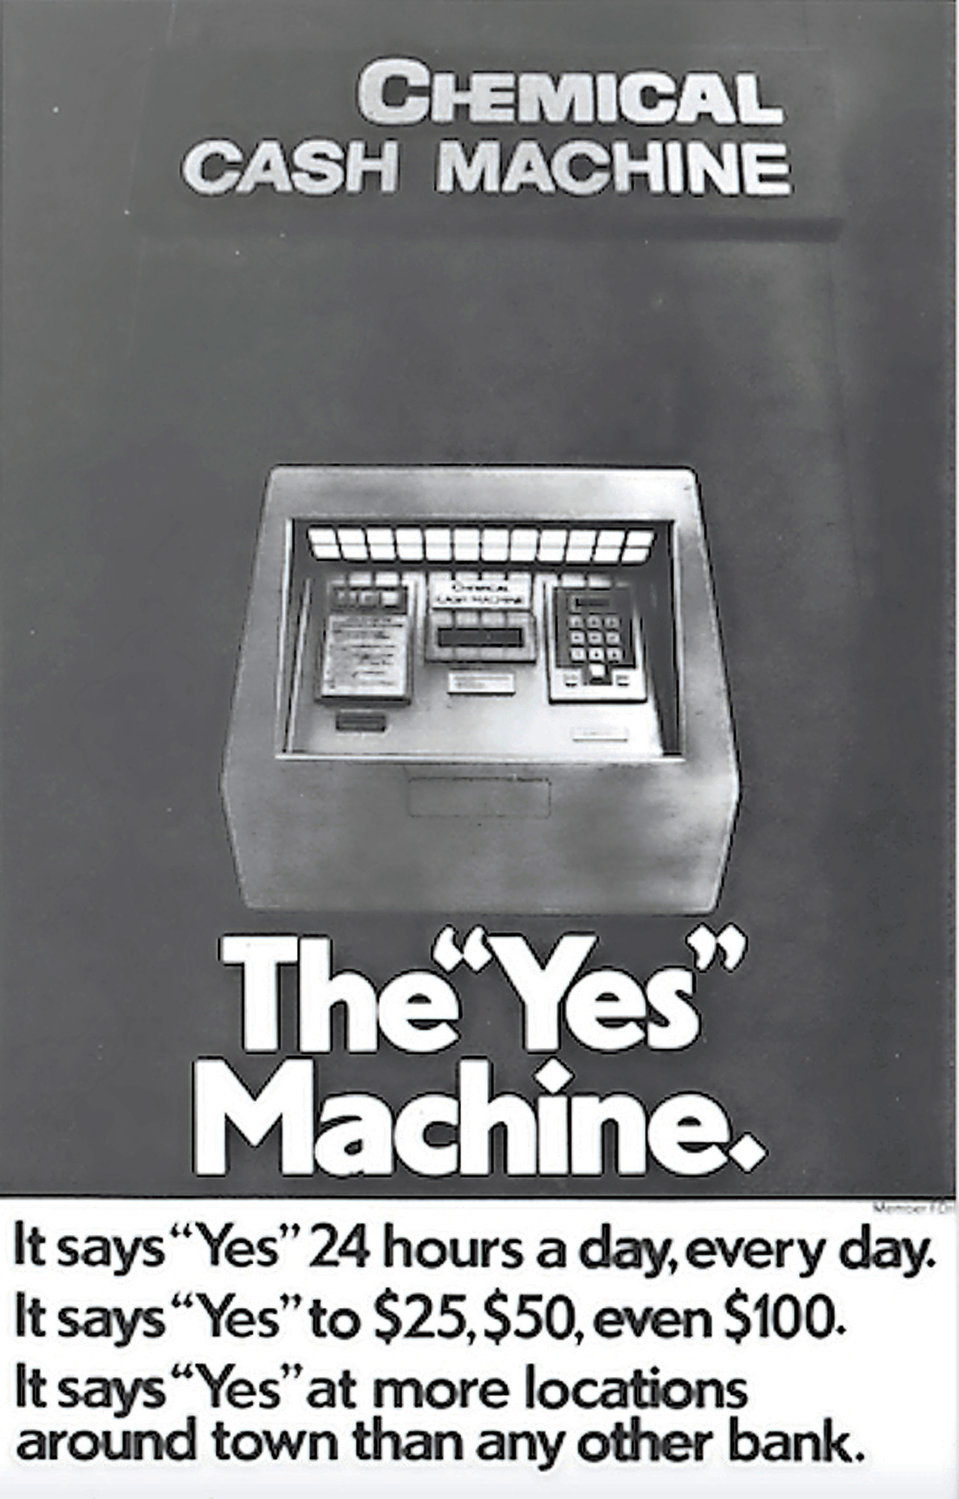 Chemical Bank introduced the ATM in 1969 in Rockville Centre before Chase acquired the company in 1996.